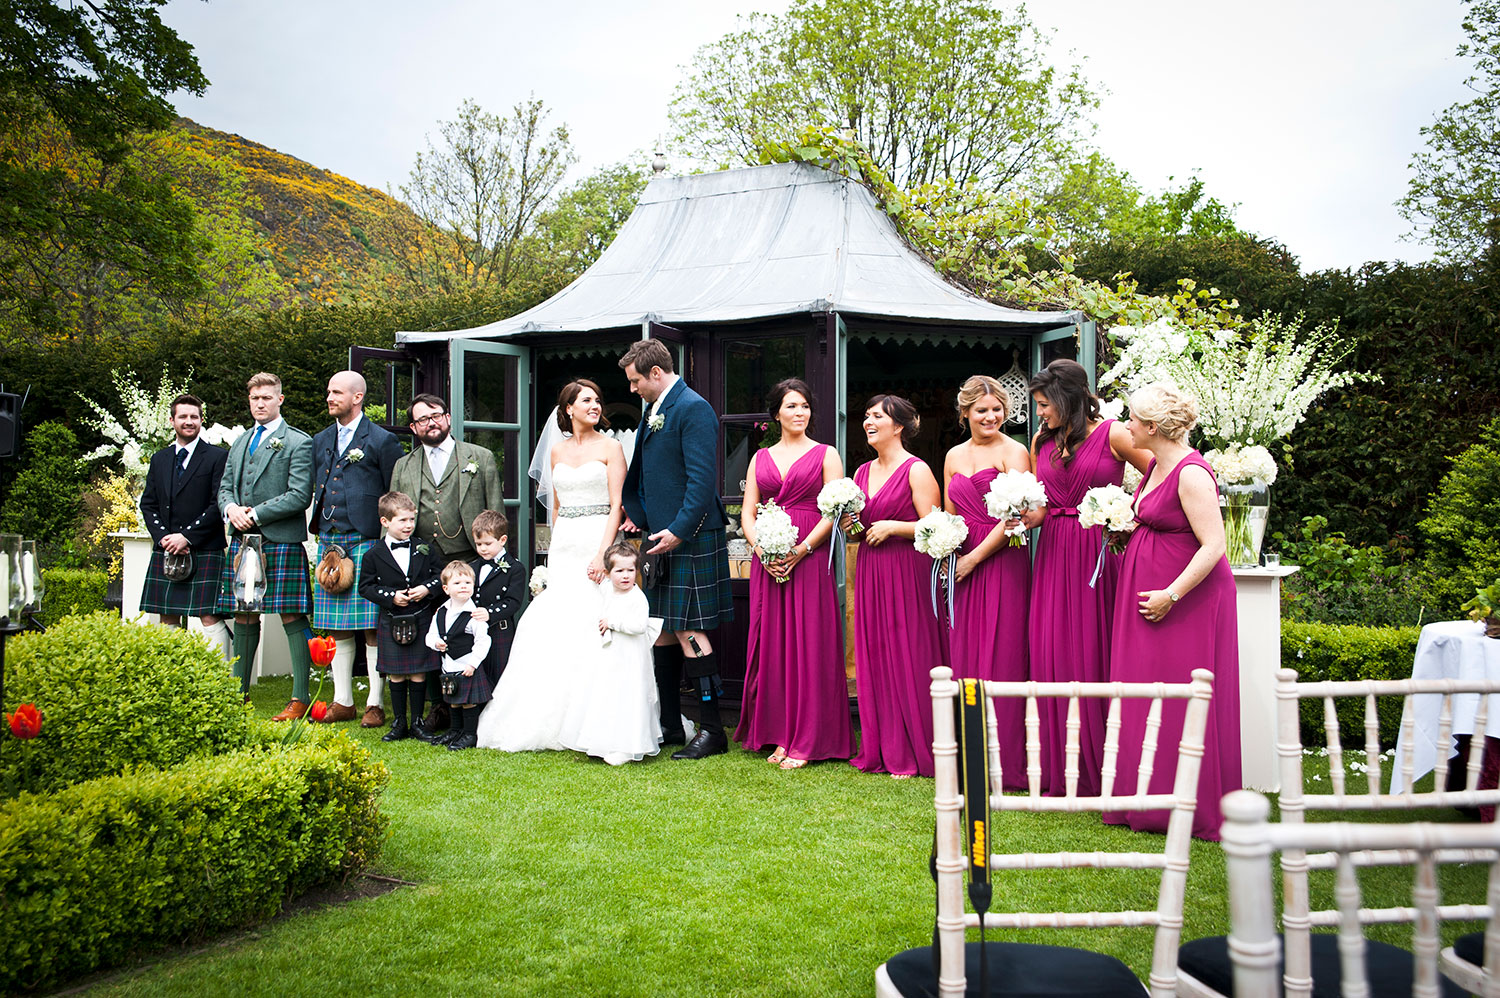 This was an outdoor ceremony at Prestonfield, best spot for the photographer during the wedding ceremony